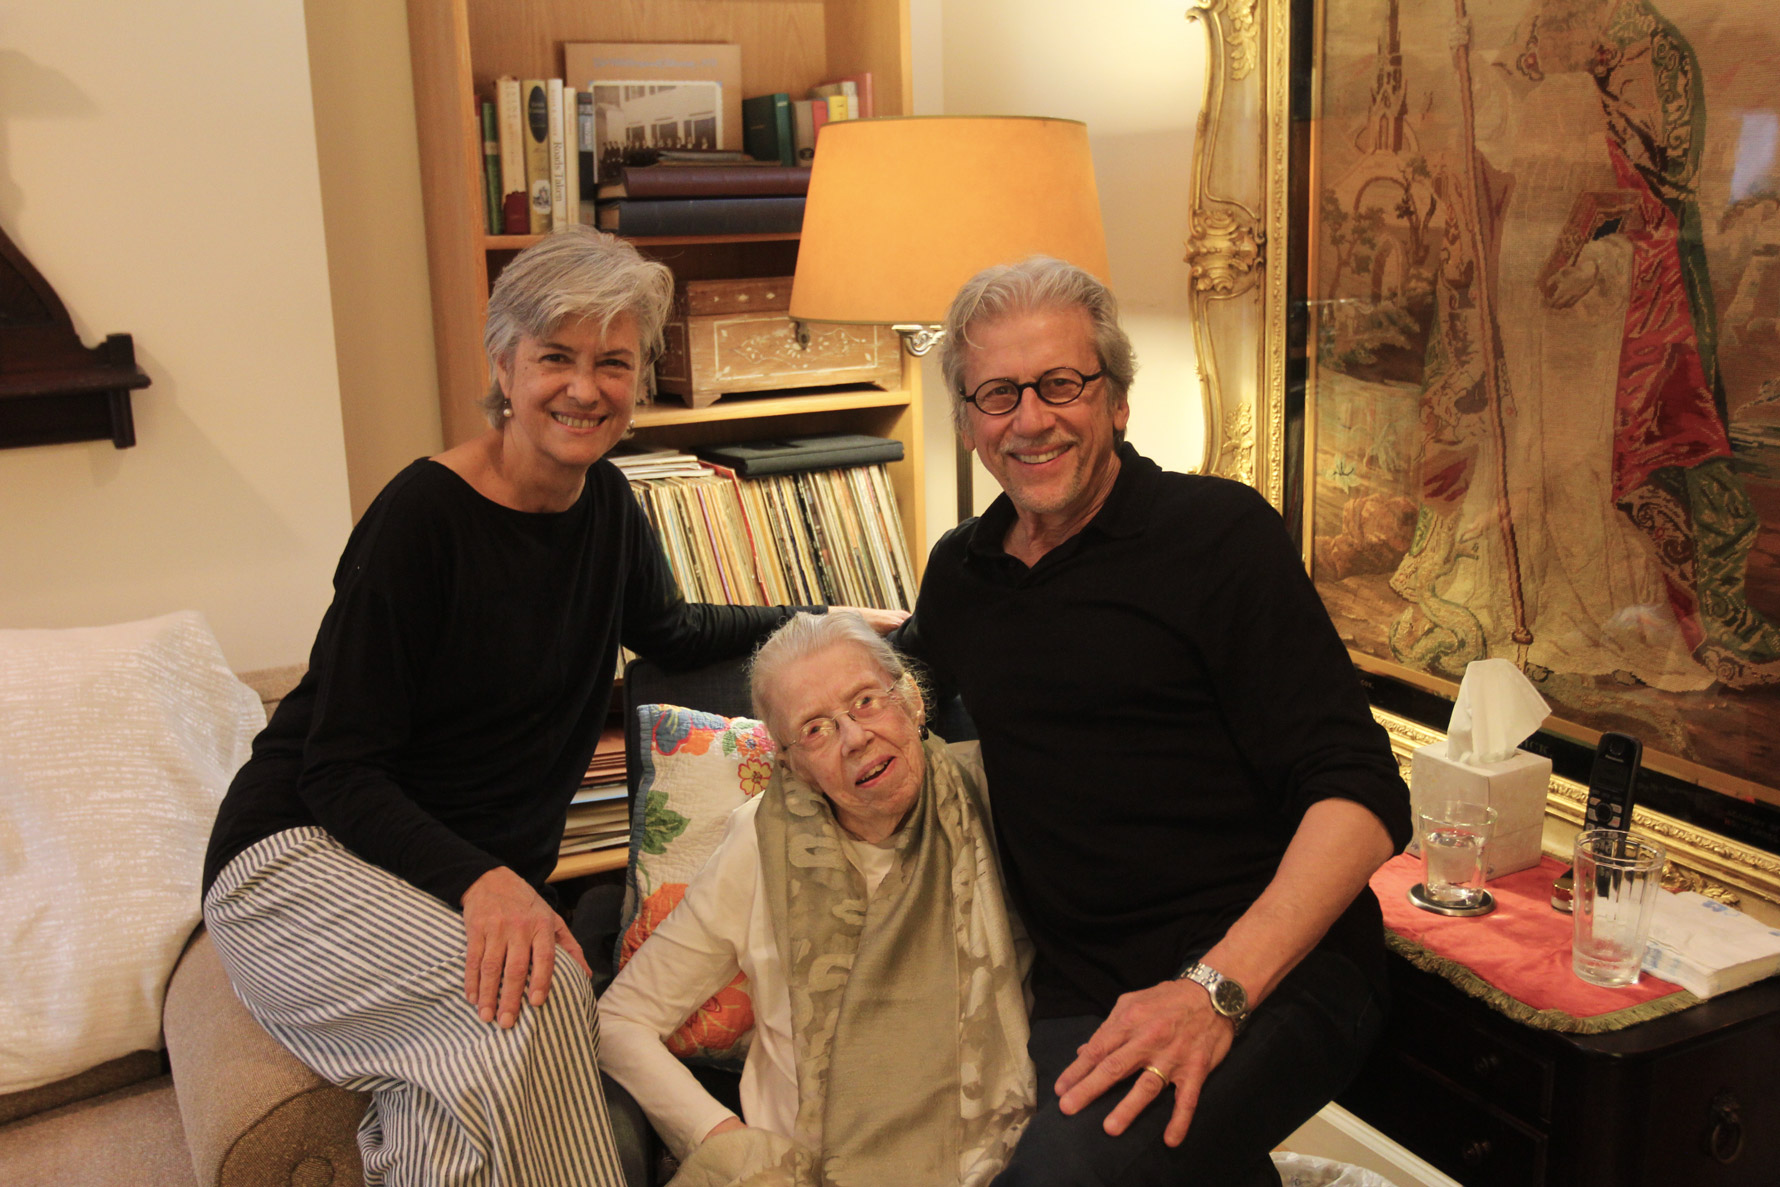 Three people posing for a camera in a living room